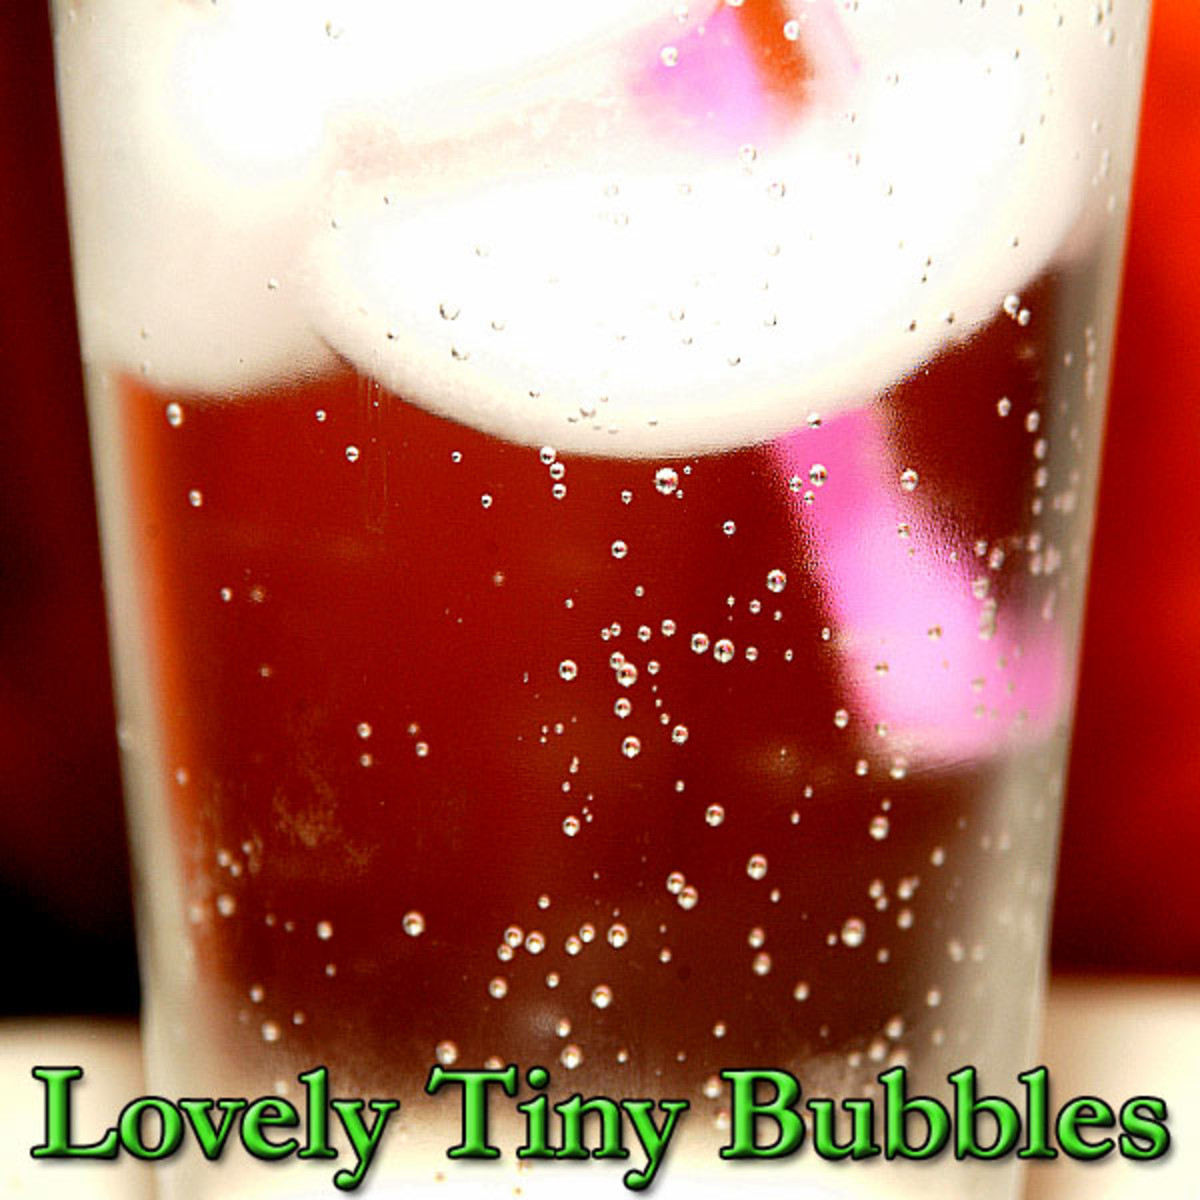 The size of the bubbles counts!